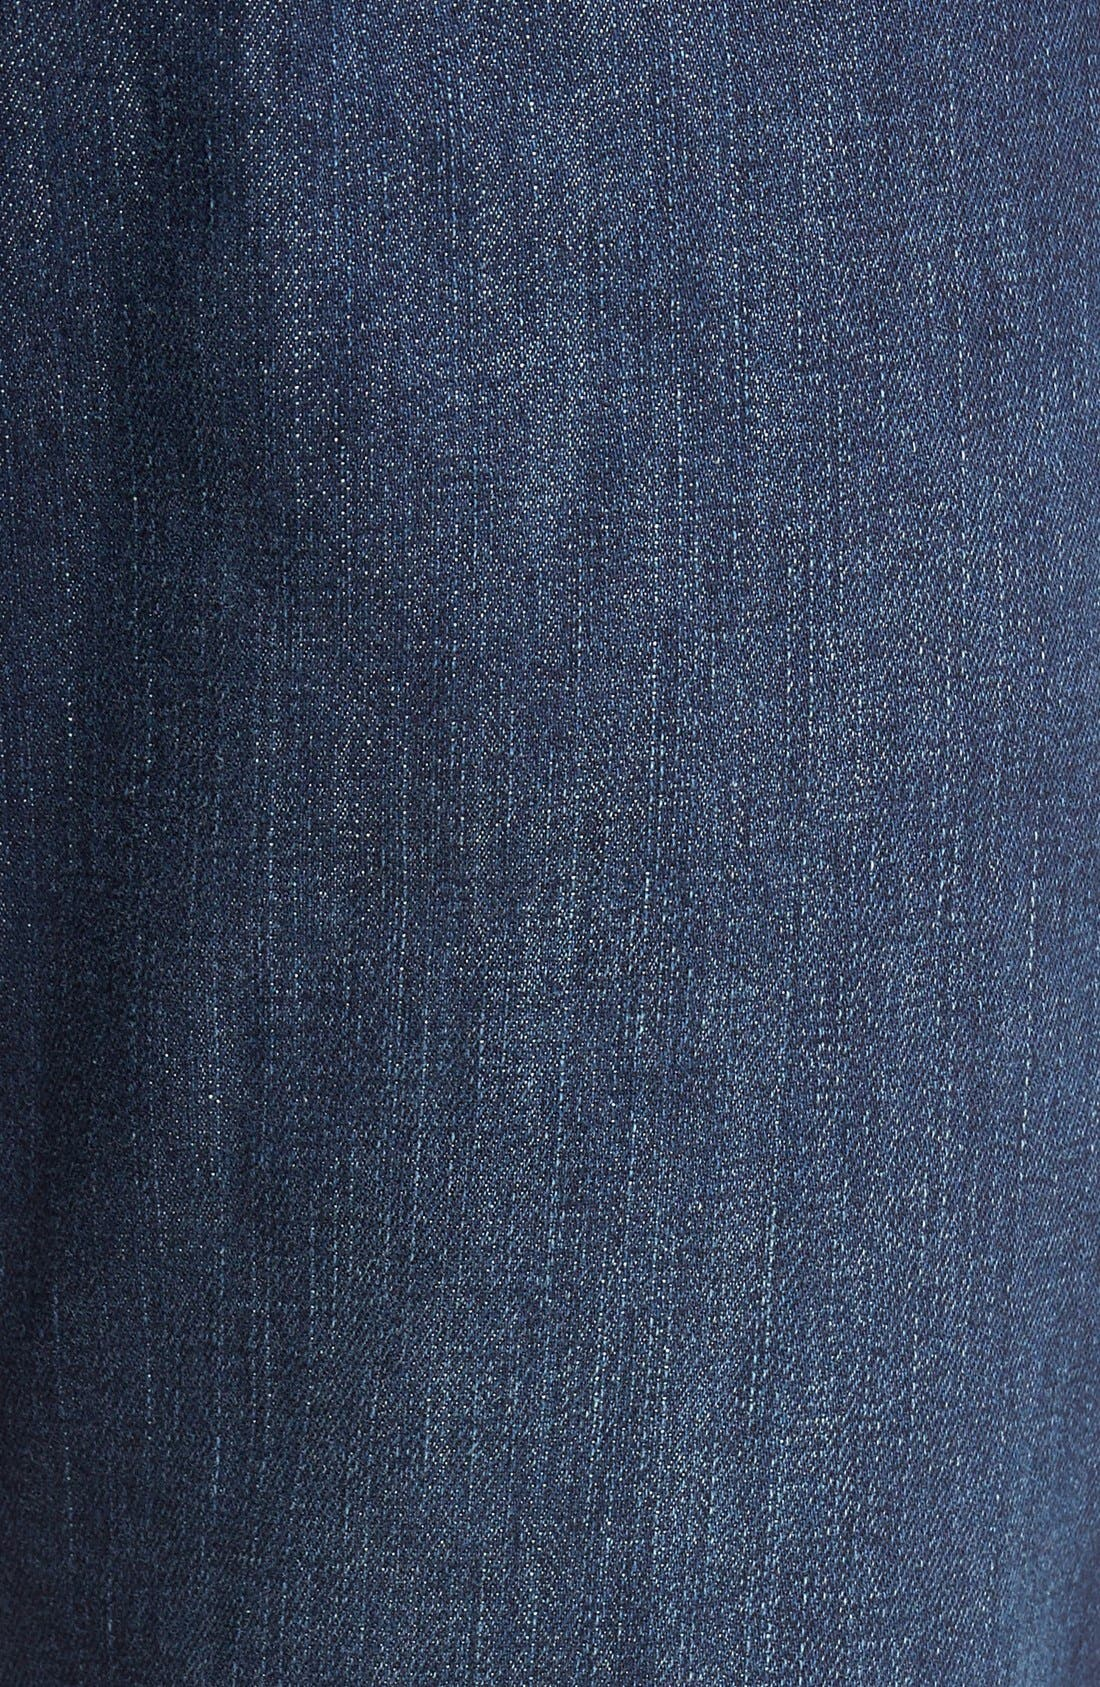 'Santorini' Relaxed Fit Jeans,                             Alternate thumbnail 6, color,                             DARK INDIGO WASH